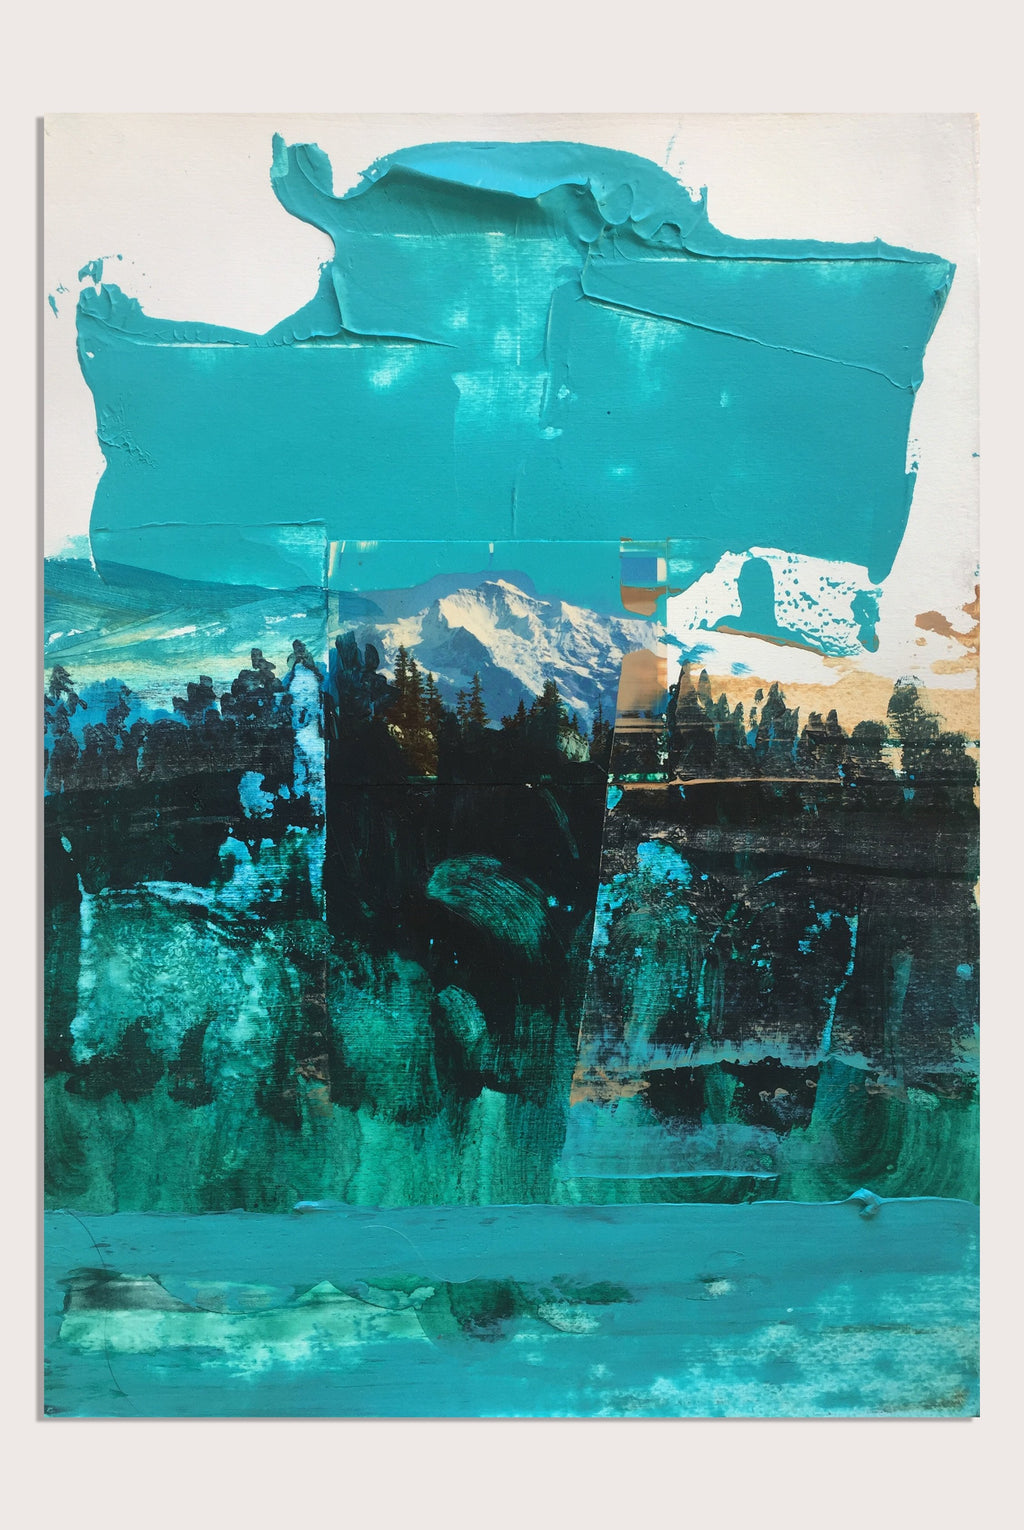 'Fake Views V: Forever Mountains' - a painting and collage by woman artists Faye Dobinson